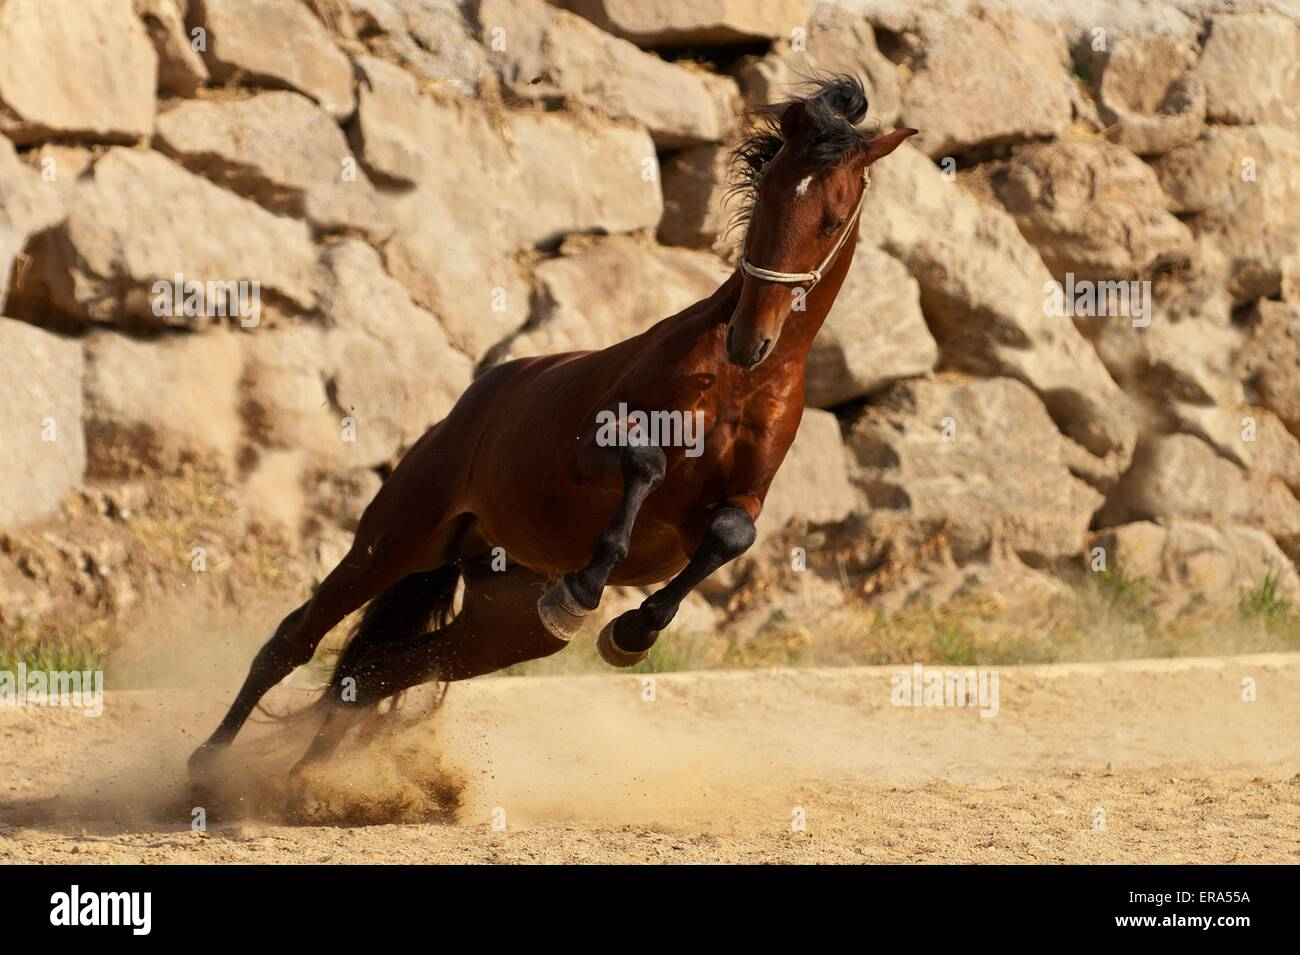 galloping PRE - Stock Image